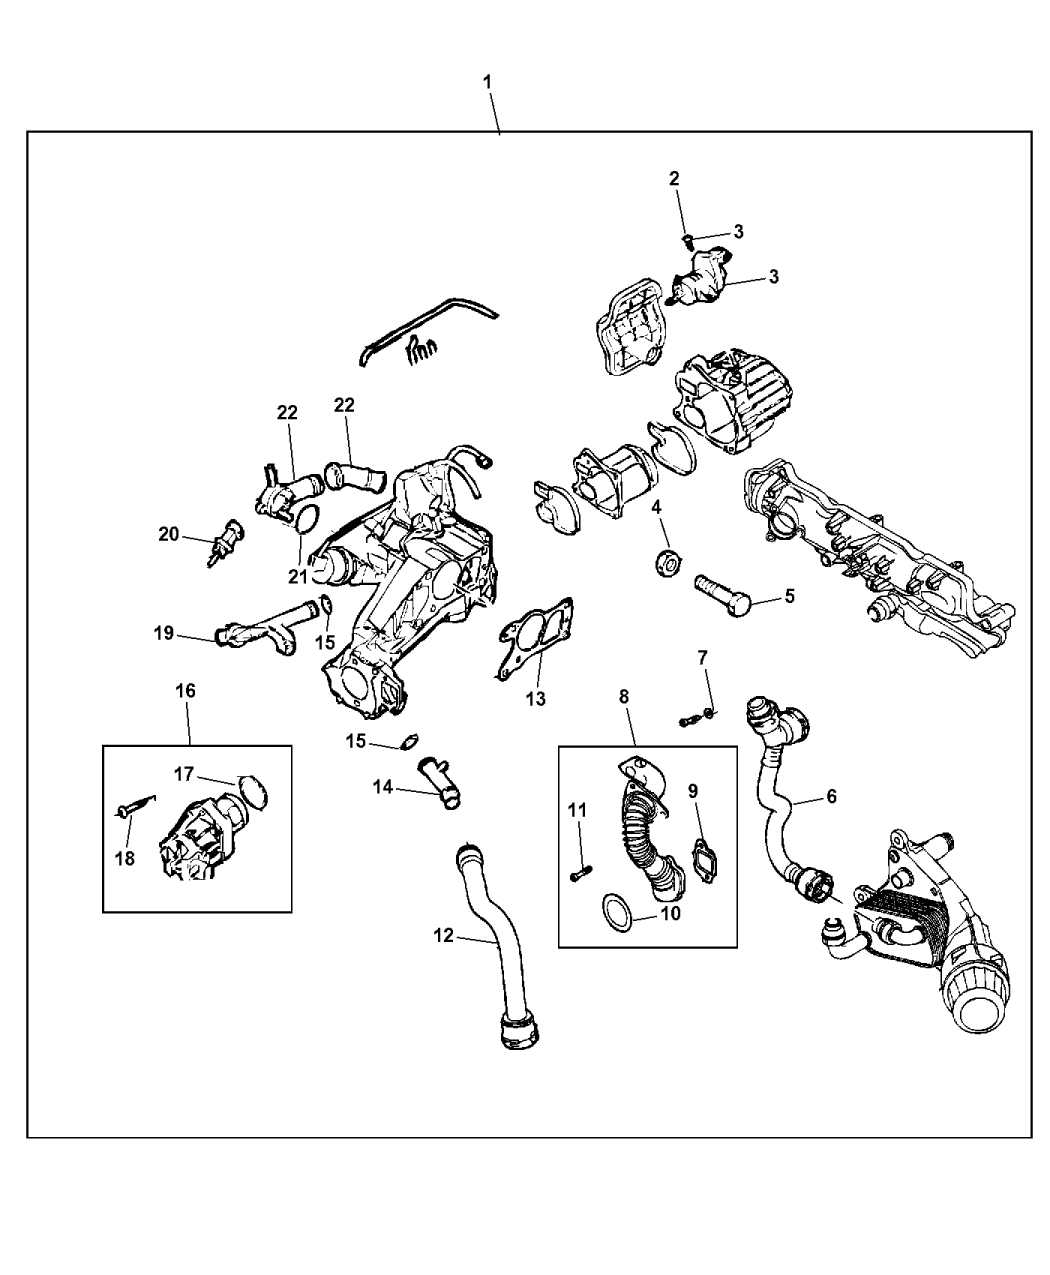 2012 dodge journey egr controls mopar parts giant rh moparpartsgiant com 2012 Dodge Journey Headlight Dodge Journey 3.6 Engine Diagram